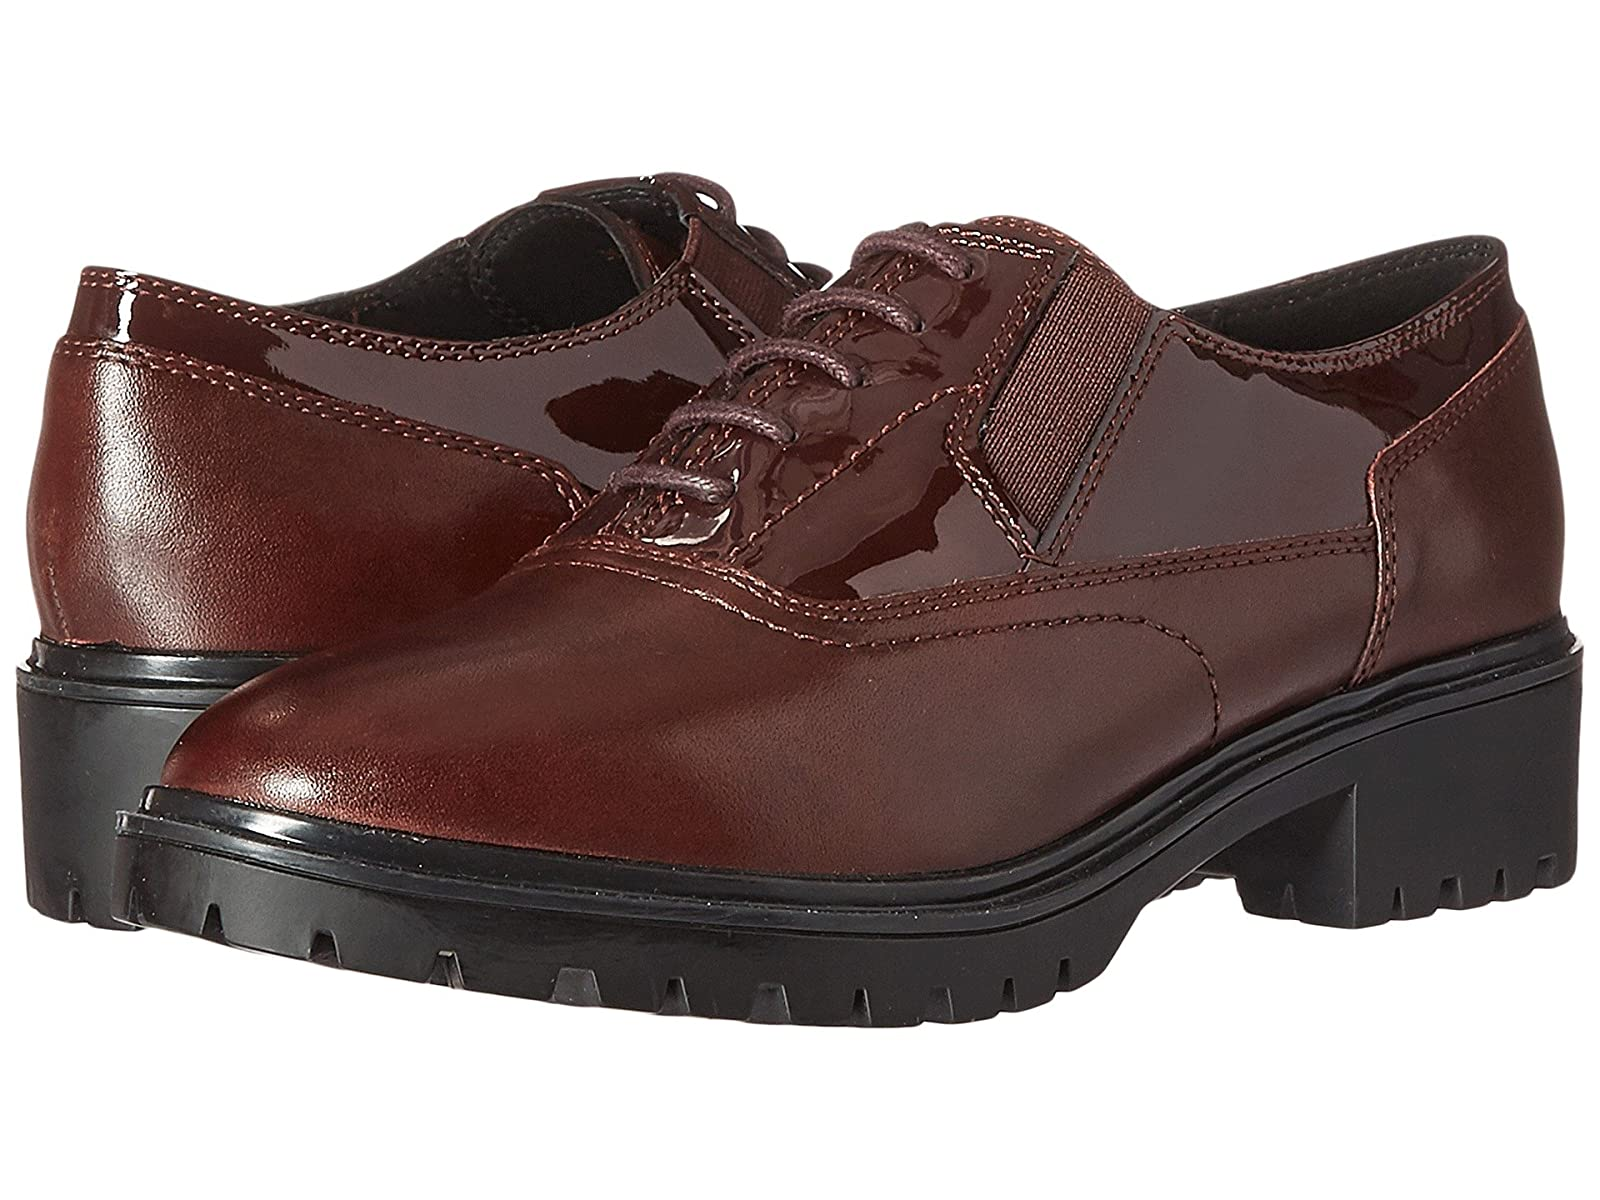 Geox WPEACEFUL7Cheap and distinctive eye-catching shoes